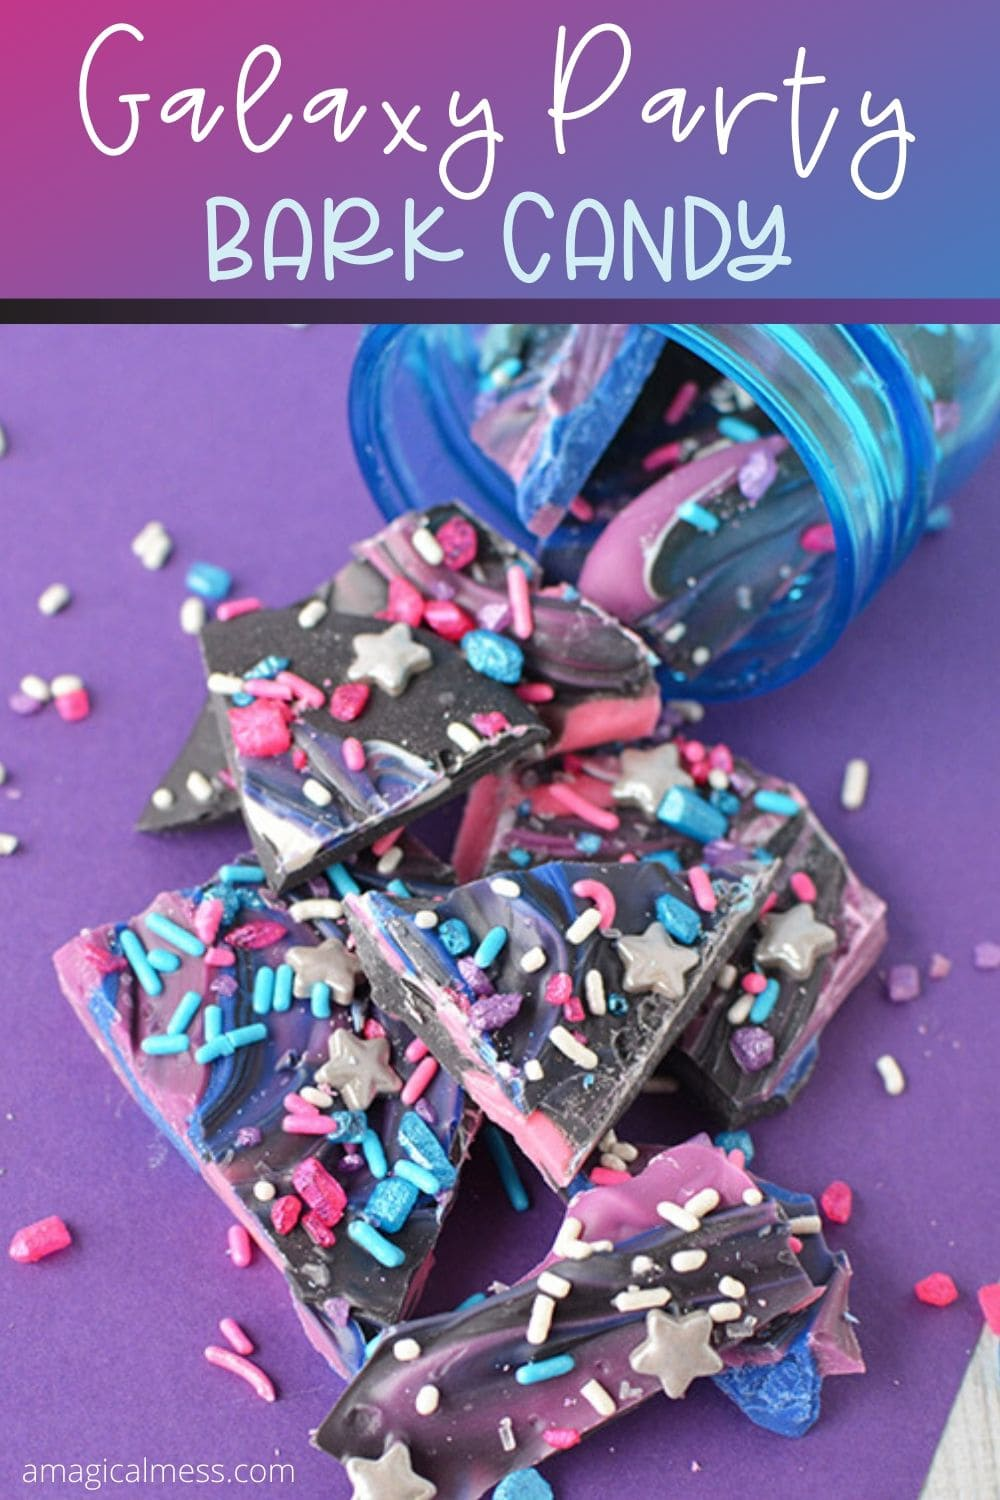 candy dumped out of blue jar